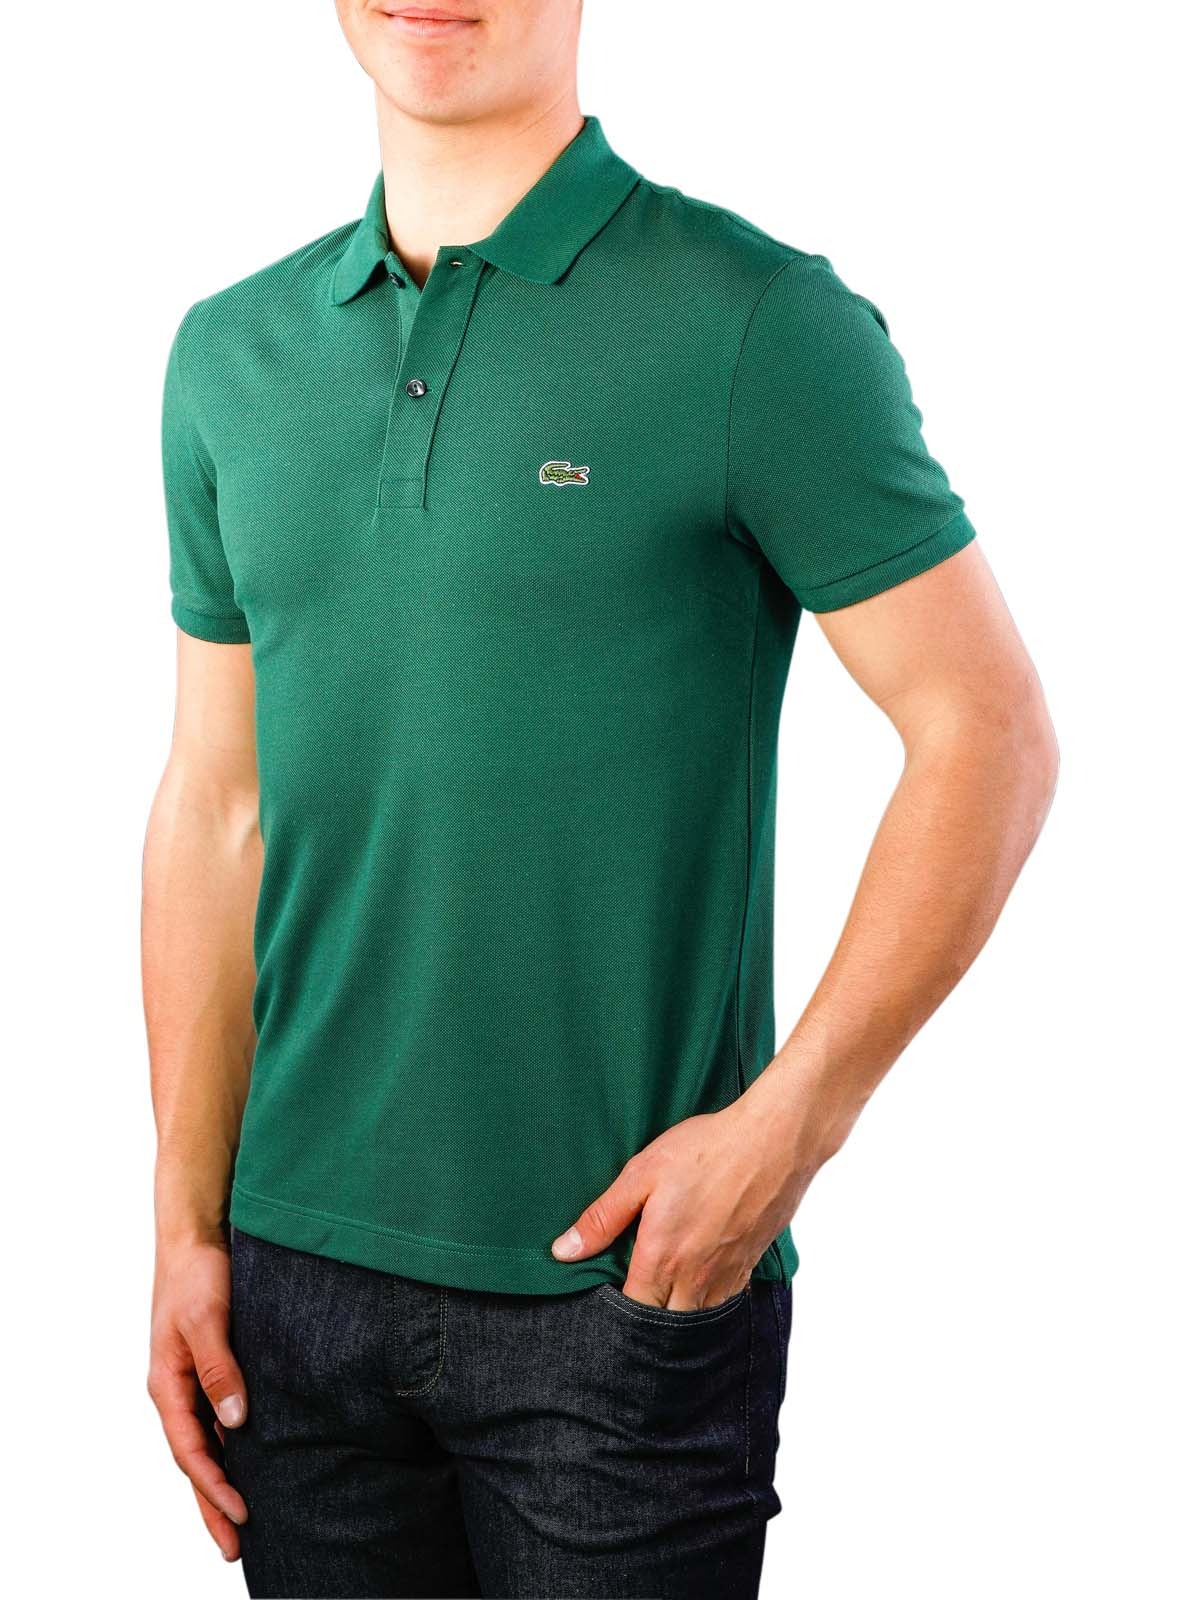 c21768e0 Fast Delivery | Lacoste Polo Shirt Slim Short Sleeves ... - McJeans.ch